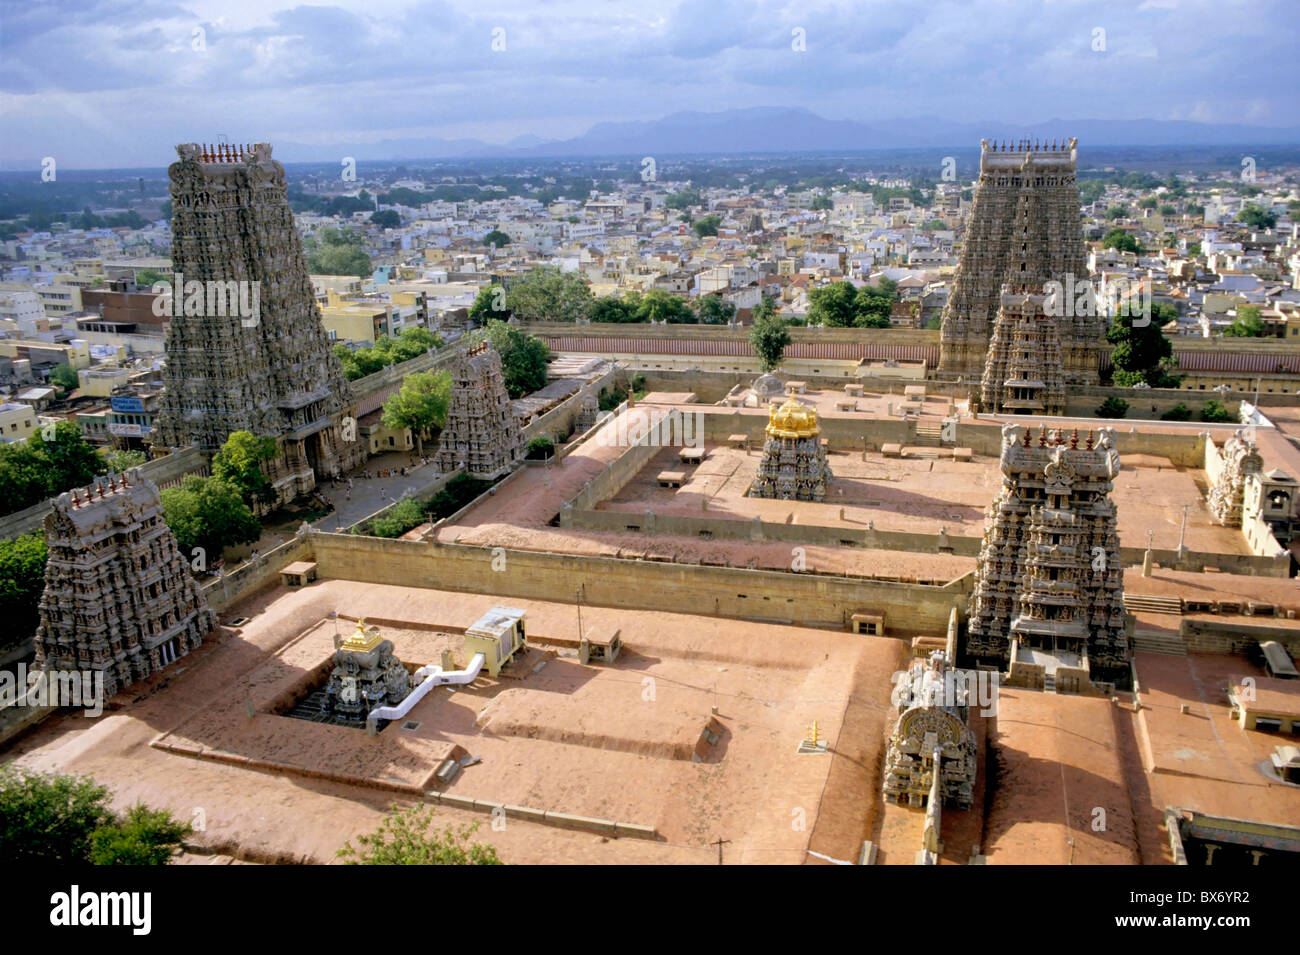 Madurai, Tamil Nadu, India - The Meenakshi Amman Temple and cityscape of Madurai. Stock Photo